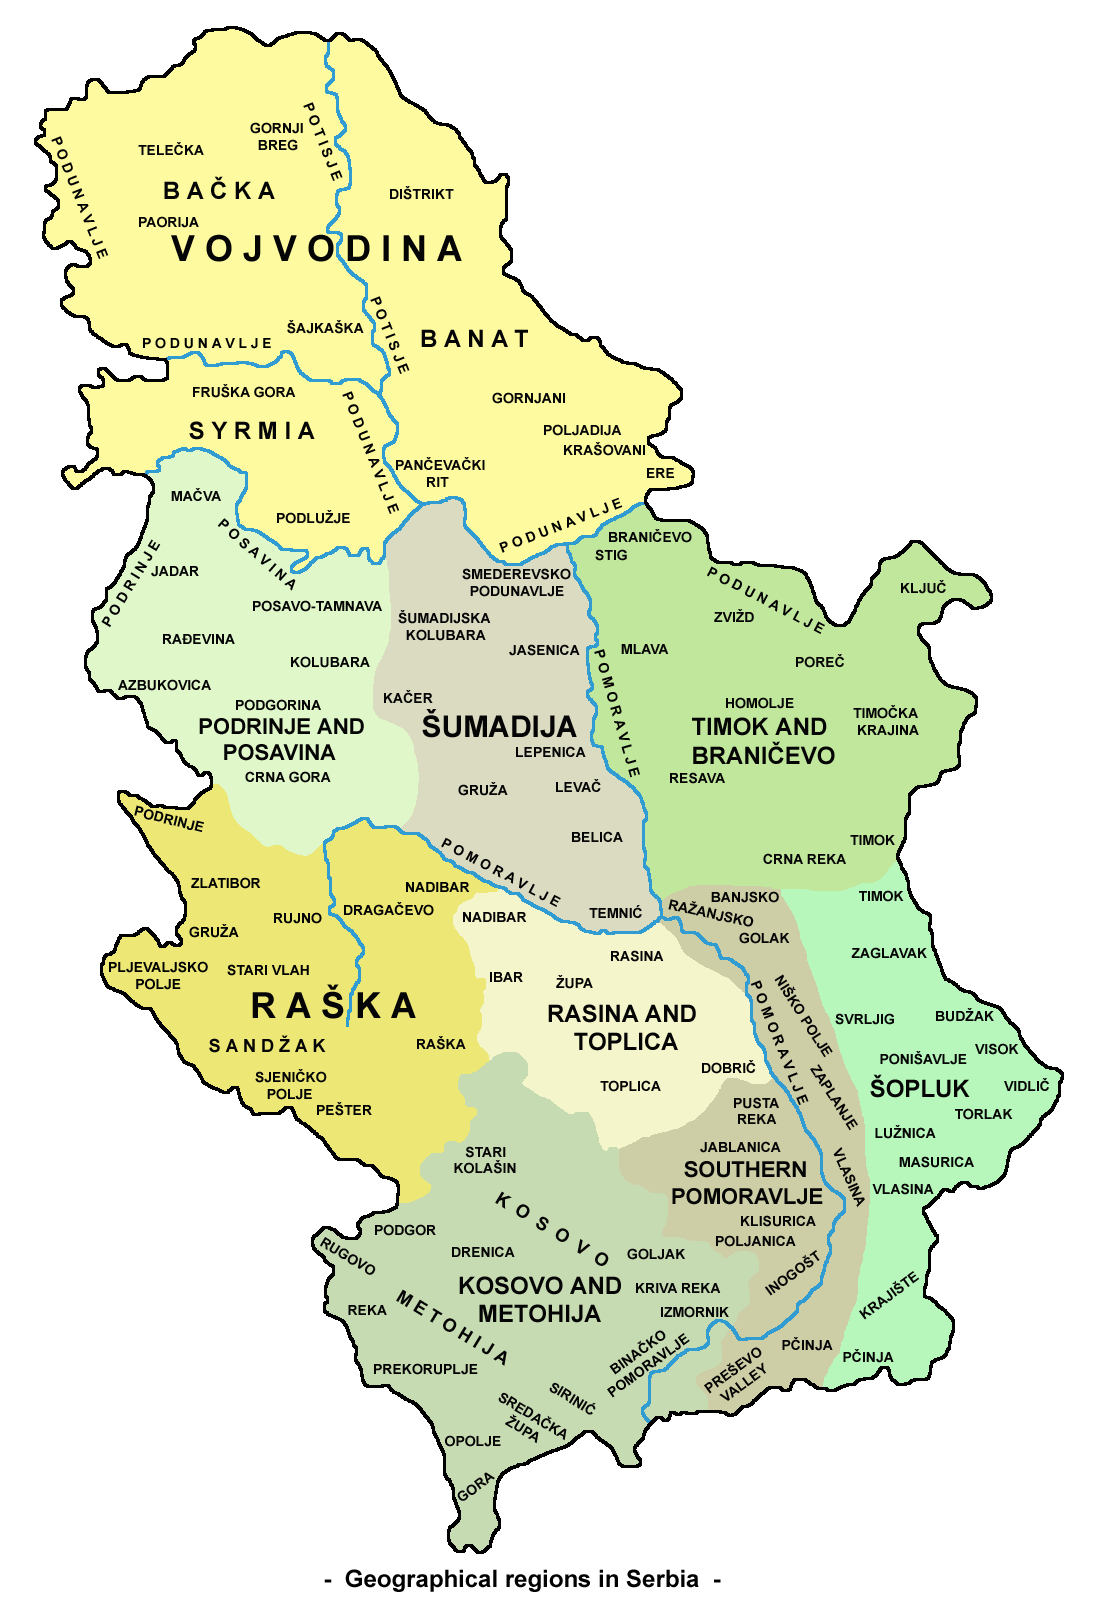 serbian history Serbia was one of six republics that made up the country of yugoslavia, which broke up in the 1990s in feb 2003, serbia and montenegro were the remaining two republics of rump yugoslavia, forming a loose federation.